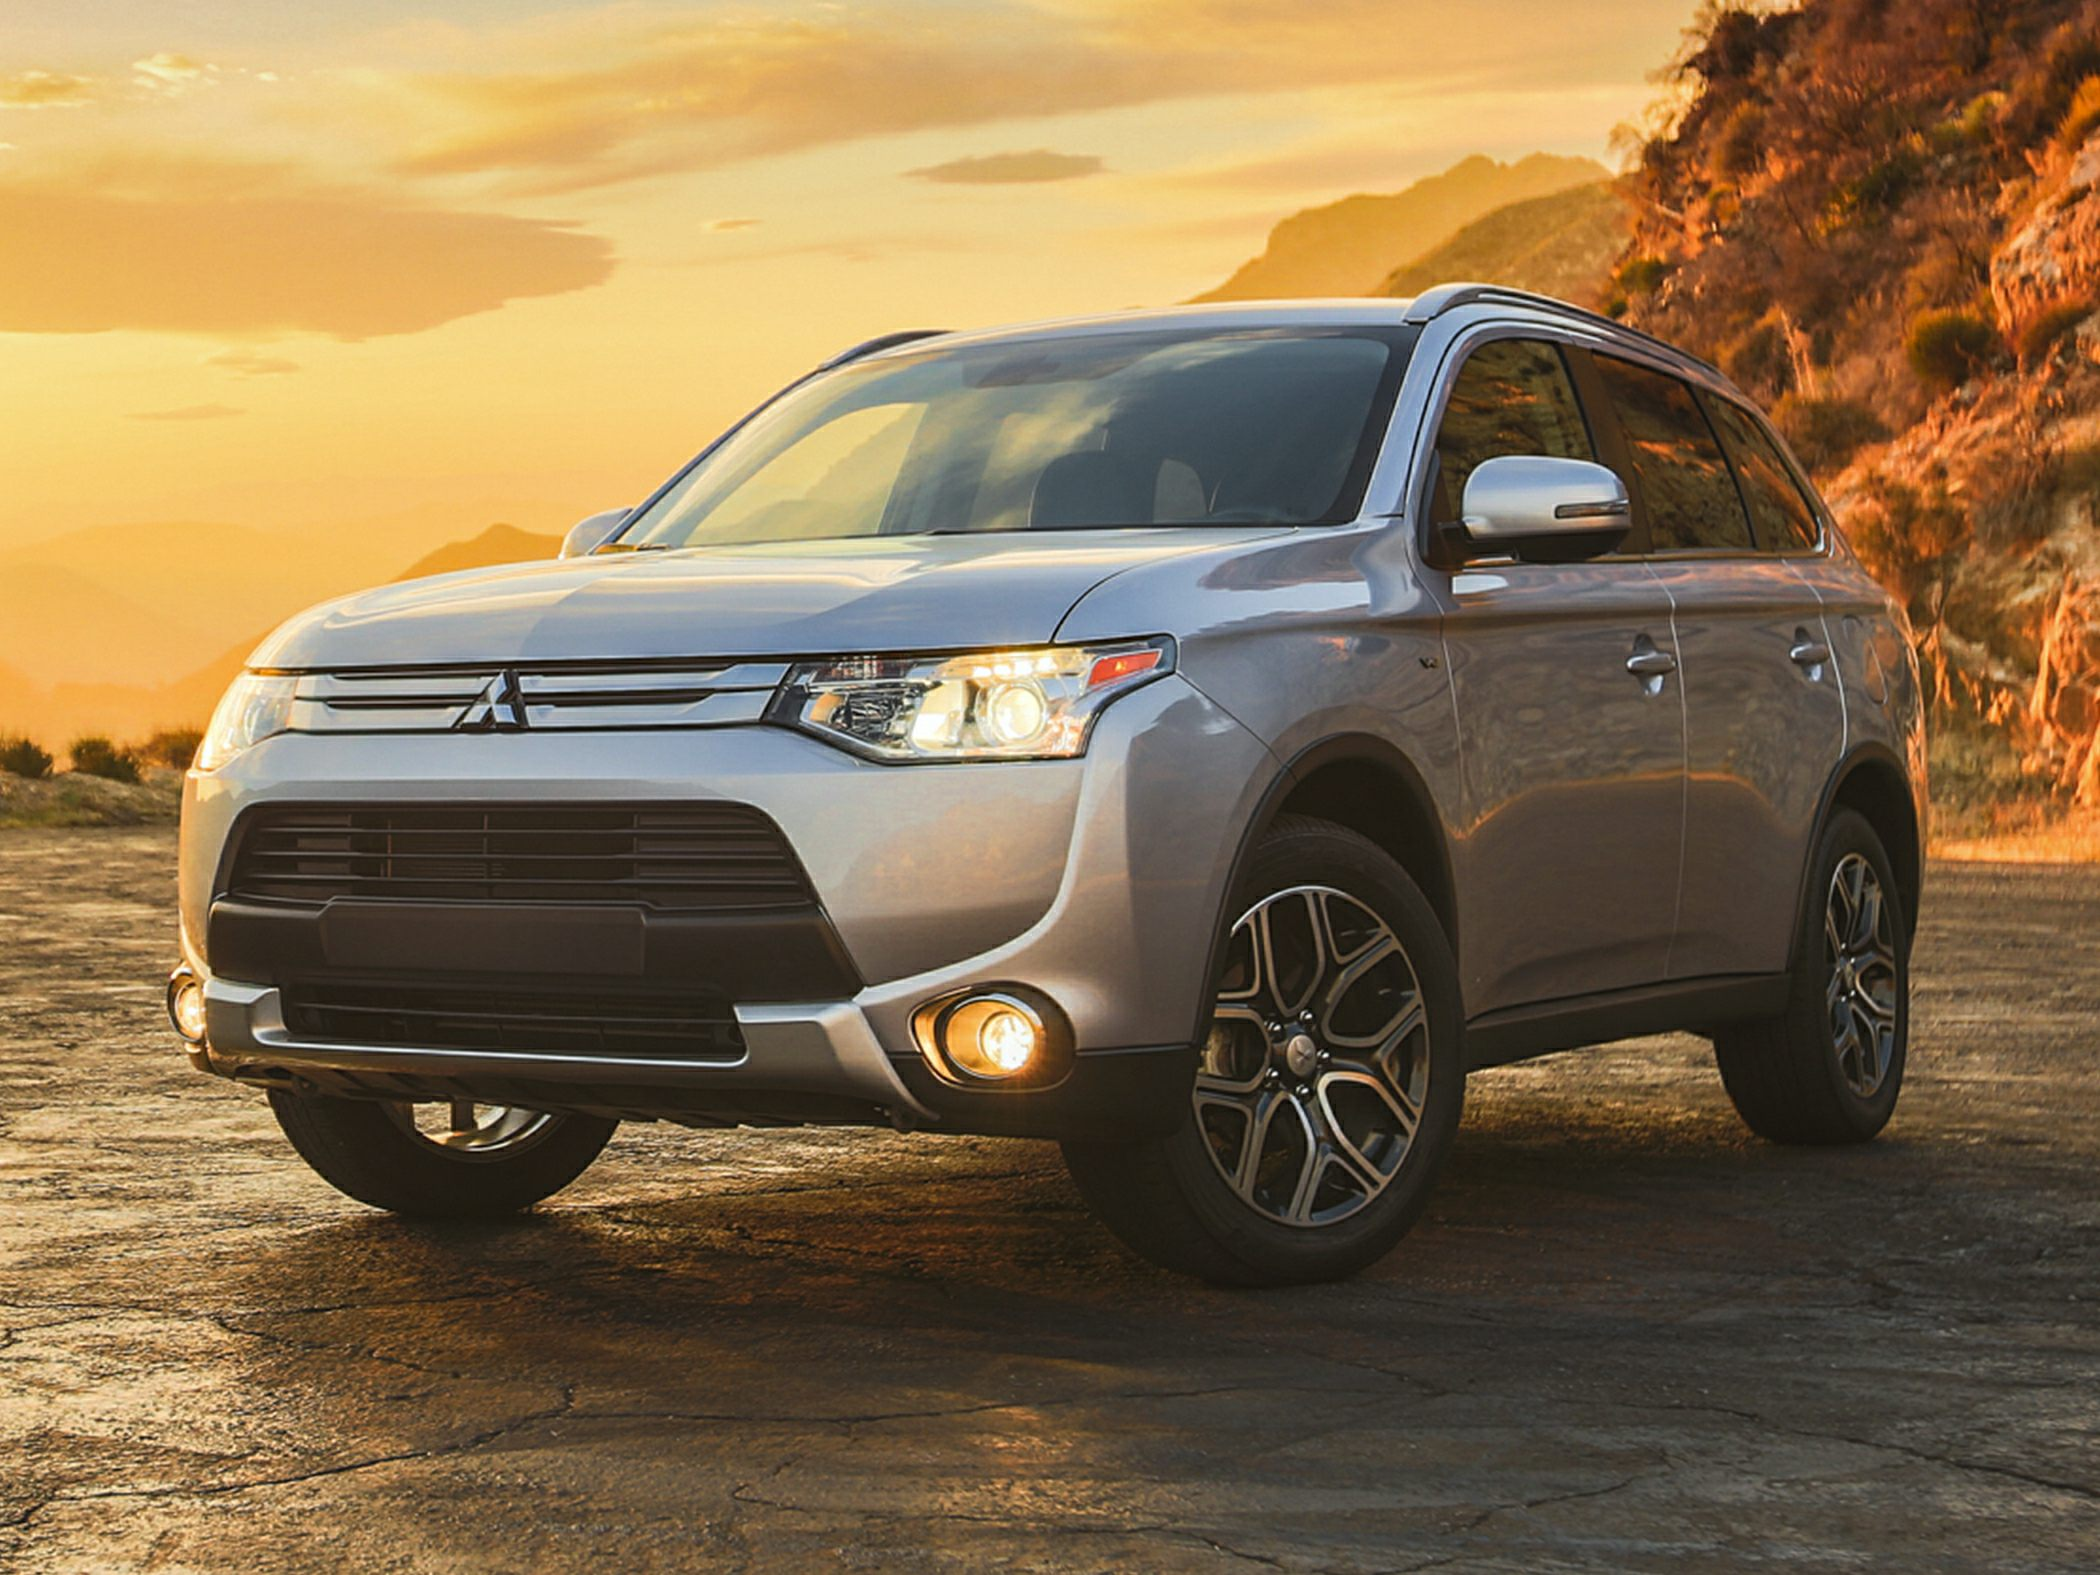 2015 Mitsubishi Endeavor Pictures Information And Specs